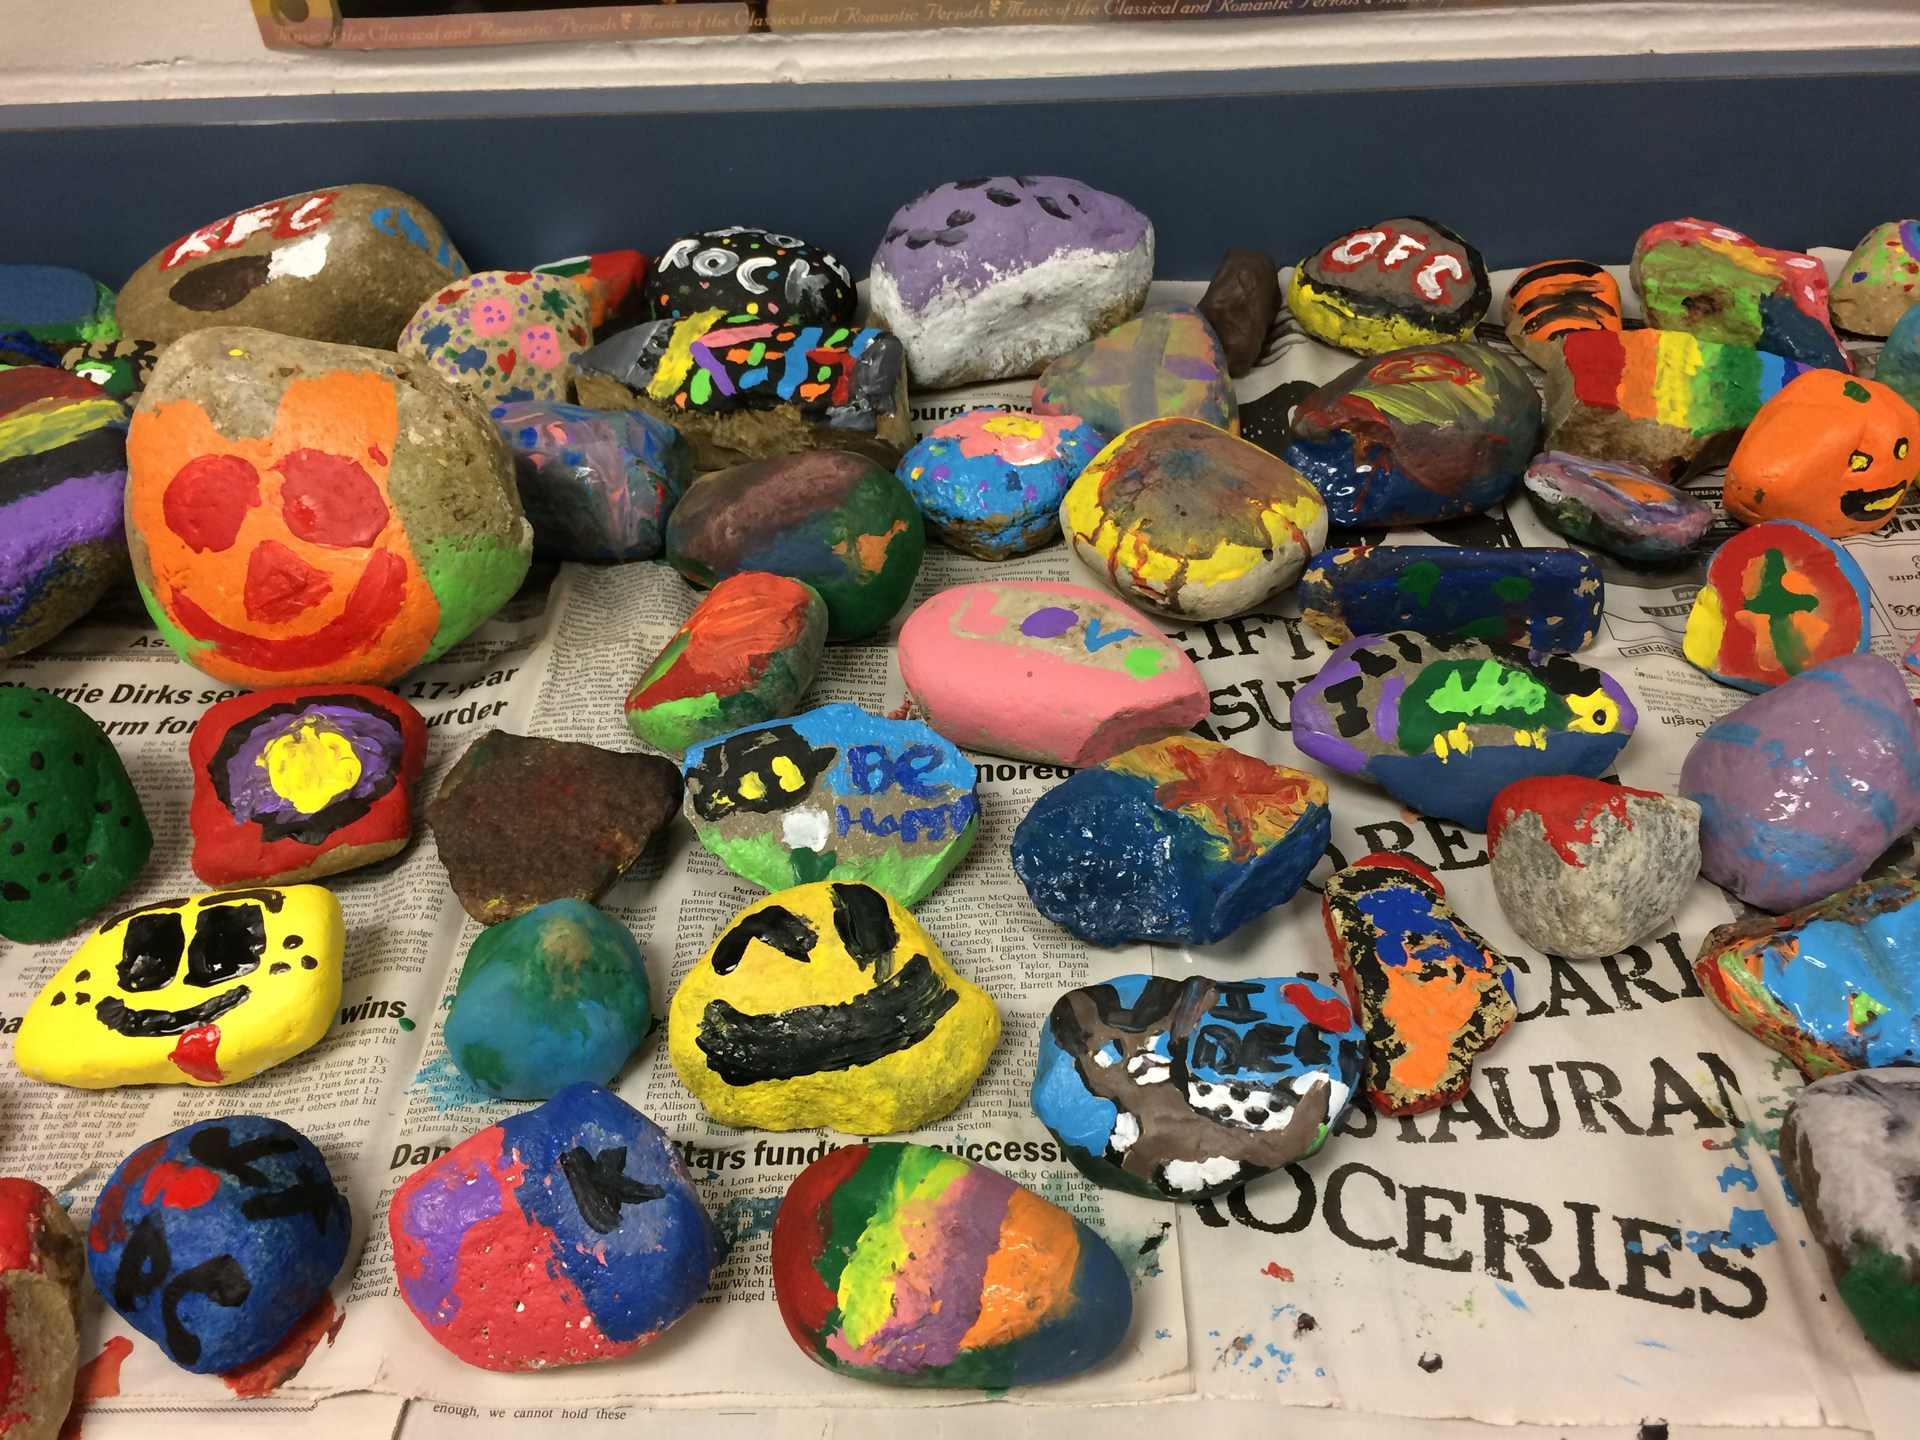 Picture of serveral Painted rocks